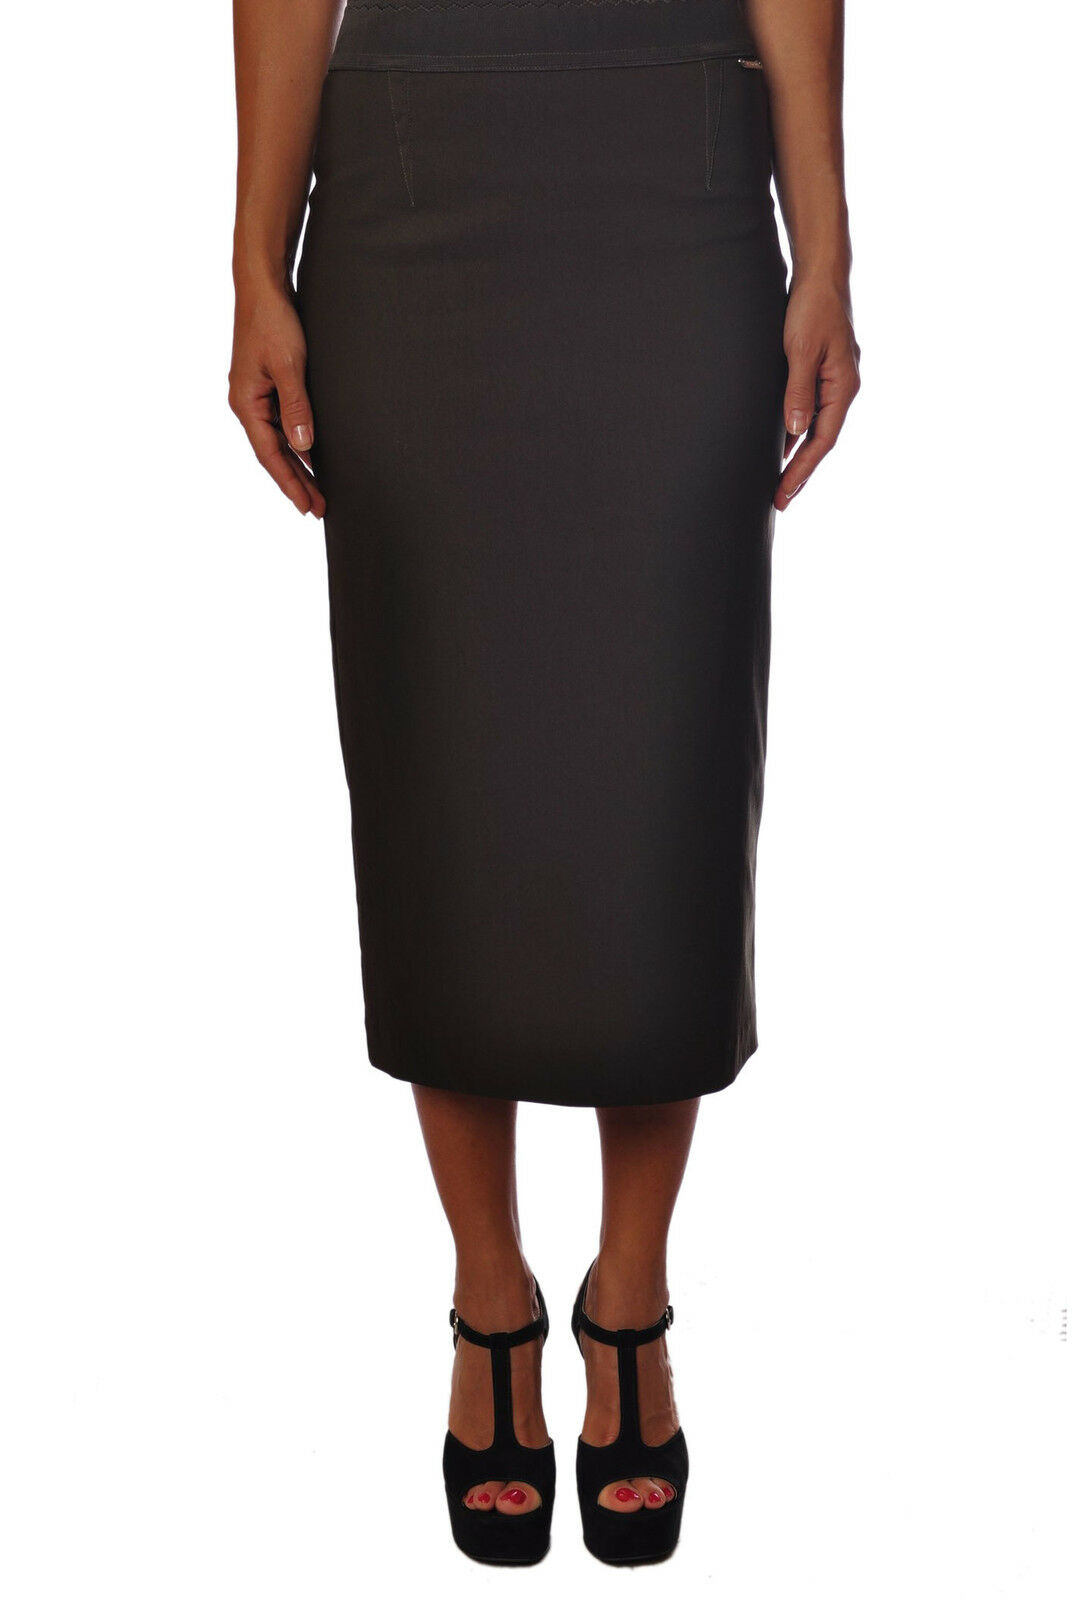 Twin Set  -  Pencil skirts - Female - Brown - 93623A181414